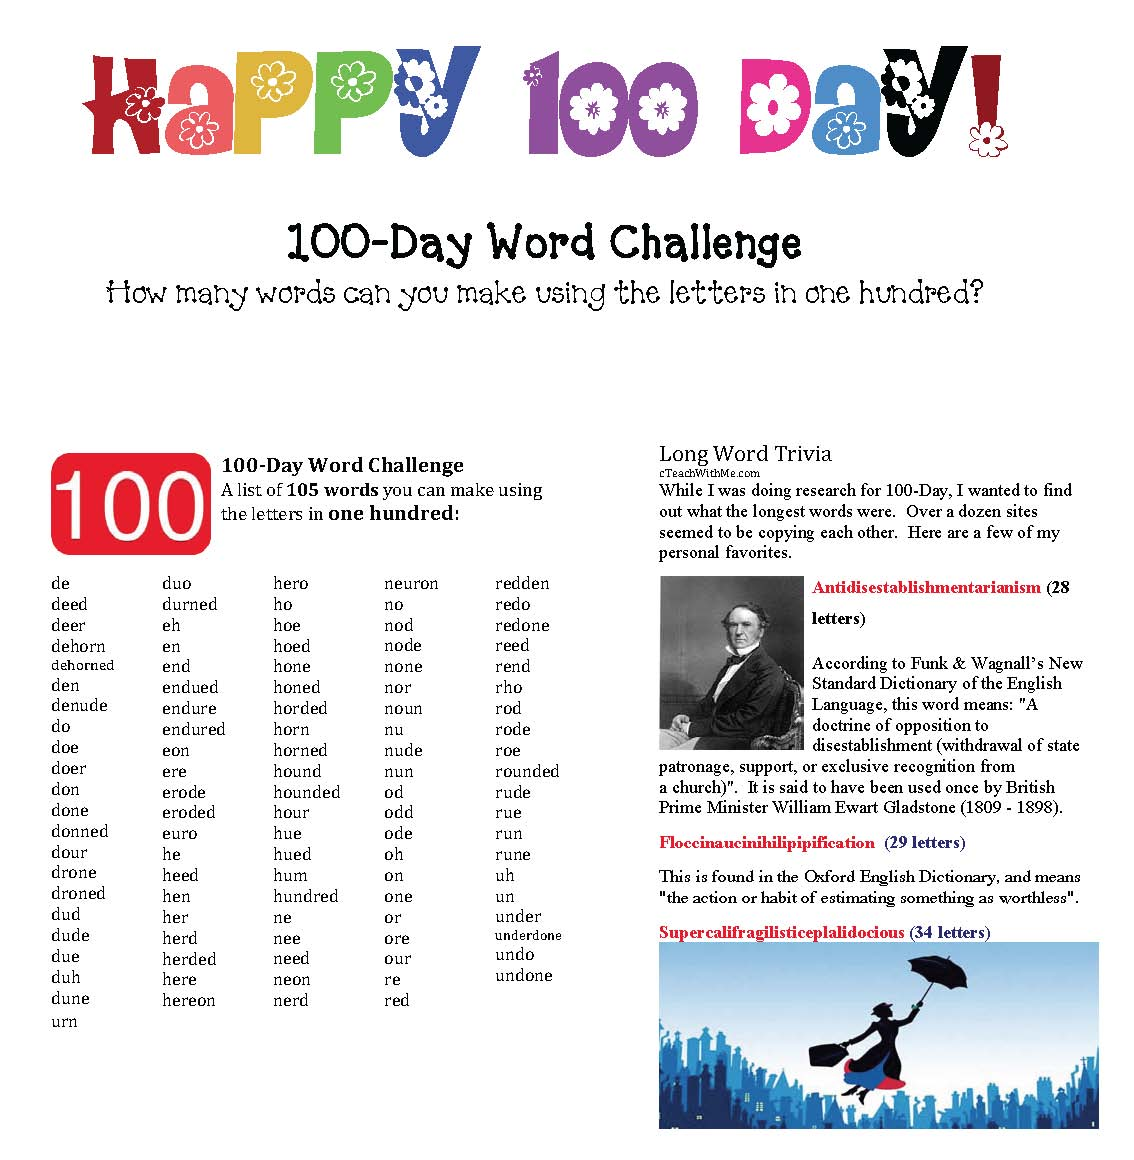 100 day games, 100 day activities, 100 day ideas, 100 day crafts, 100 day bulletin boards, analog time activities, digital time activities, telling time games, 100 day puzzles, blank 100 chart, 100 chart templates, traceable 100 chart, fill in the missing numbers 100 chart, activities for 100 Hungry ants book, ant activities, heart mystery picture 100 chart, 100 day games, how many words can you make using the letters in one hundred,